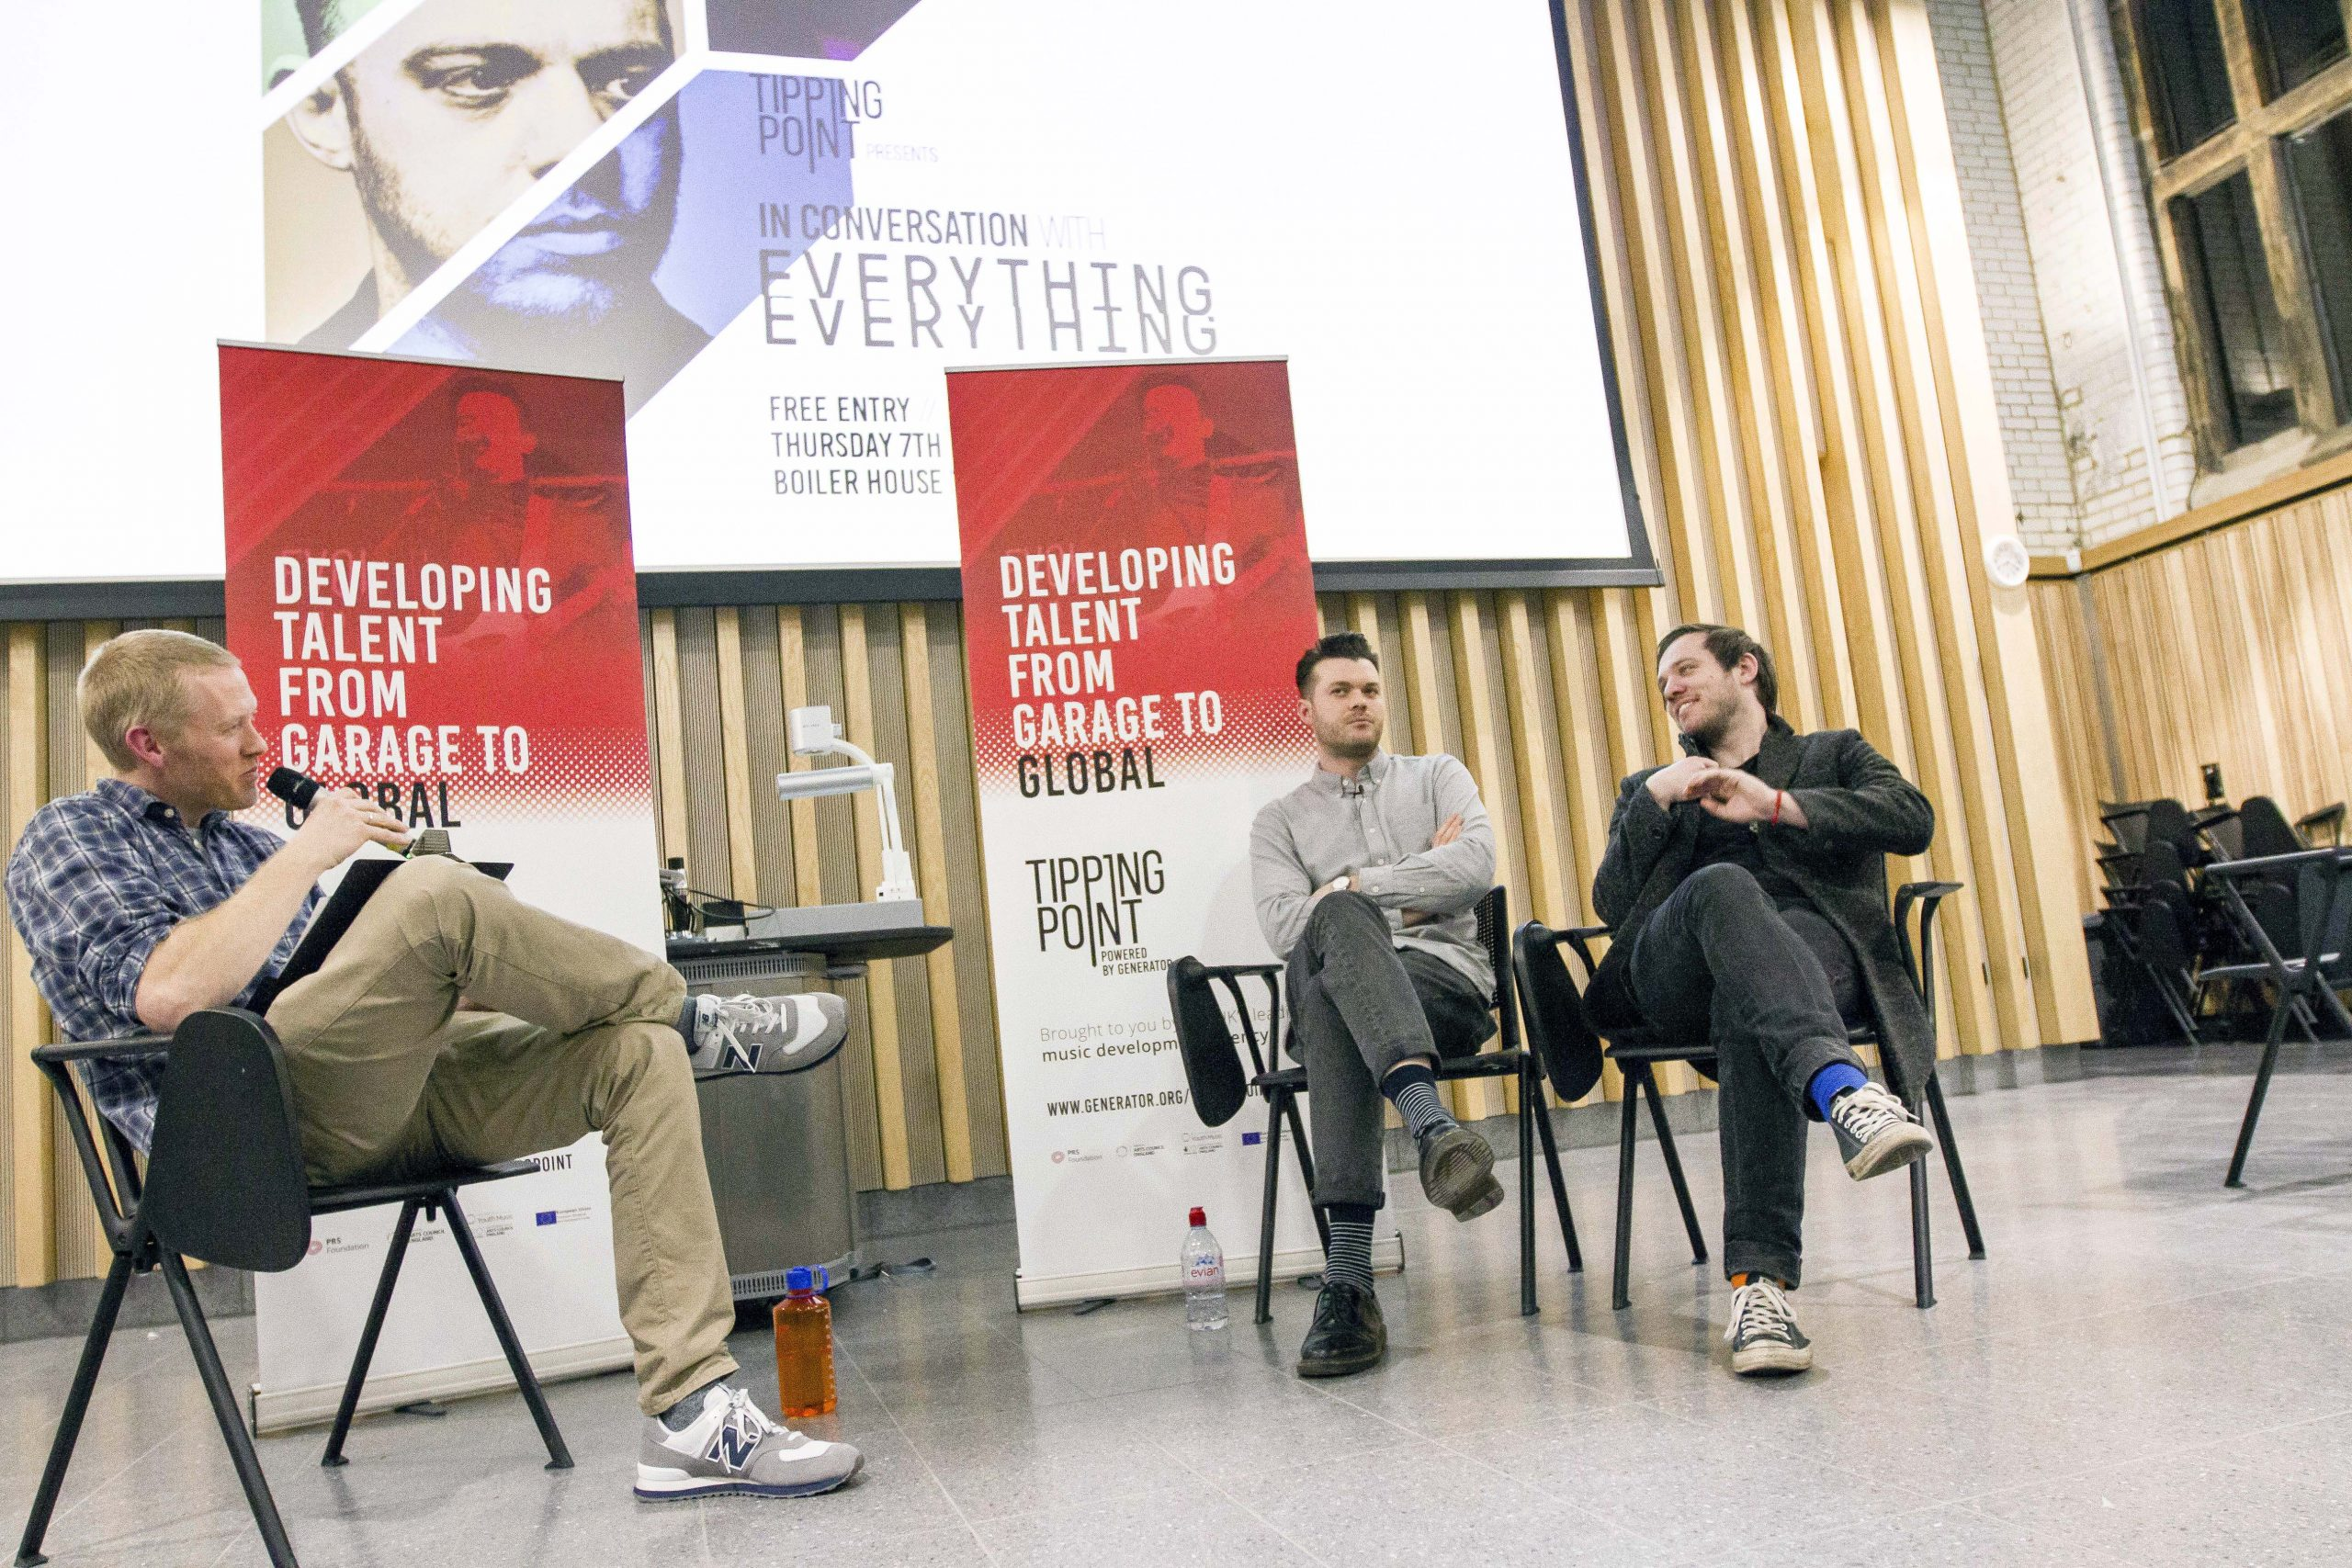 everything everything band taking part in a live interview at a tipping point event in 2019